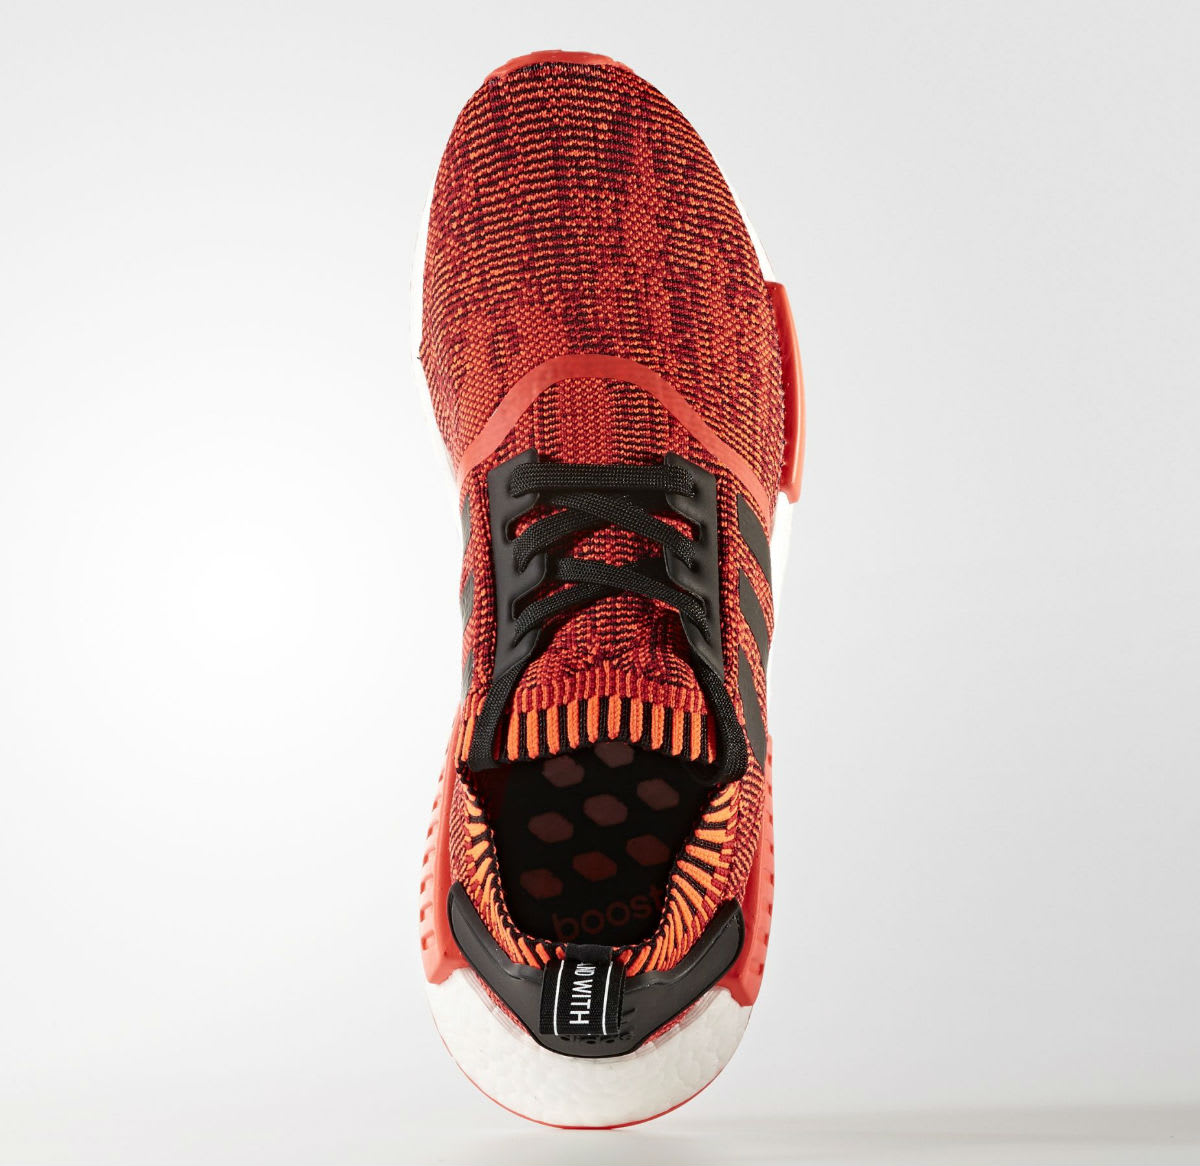 071d55b39a215 2017 adidas NMD R1 Primeknit Red Apple NYC Bright Red White-Black For Sale